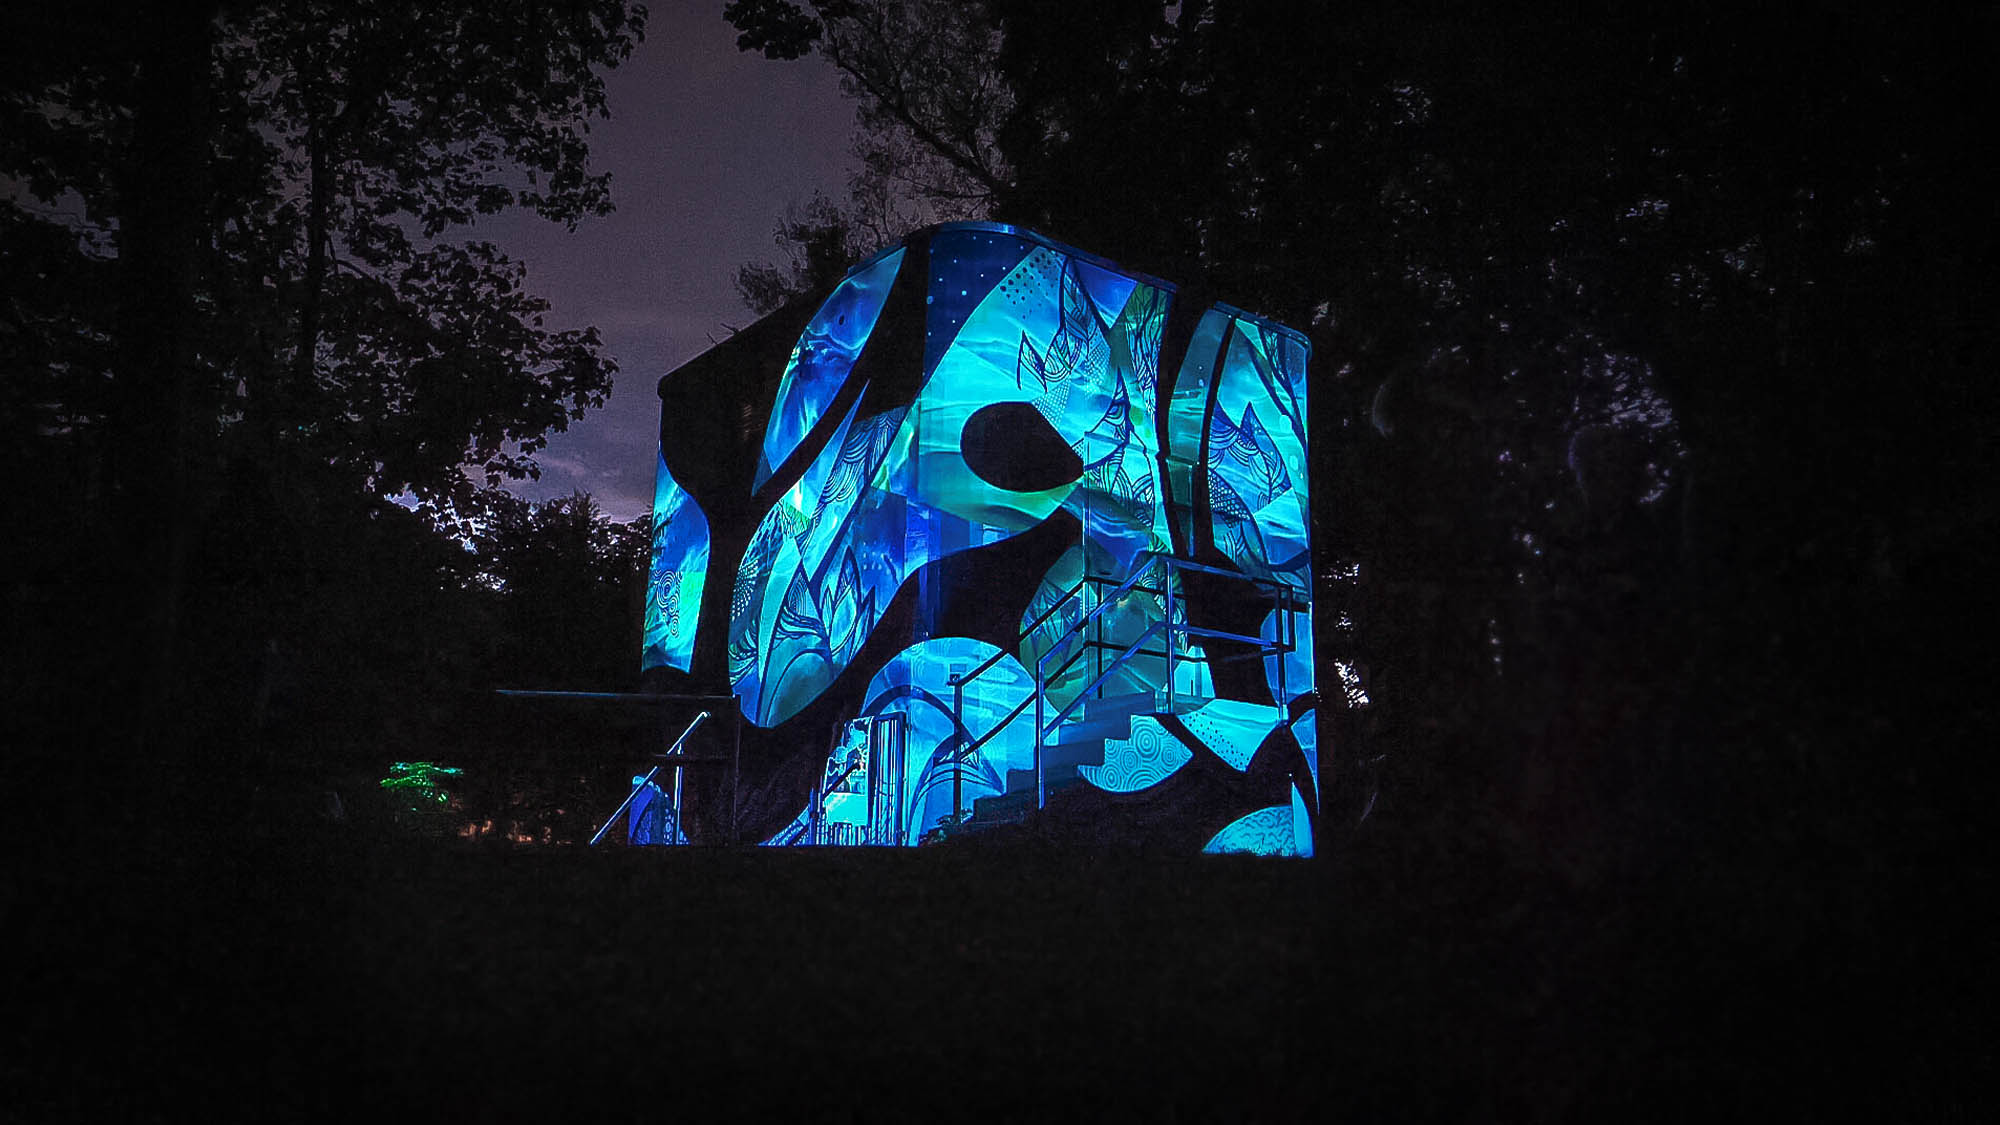 Metimotus - Projection Mapping Mural